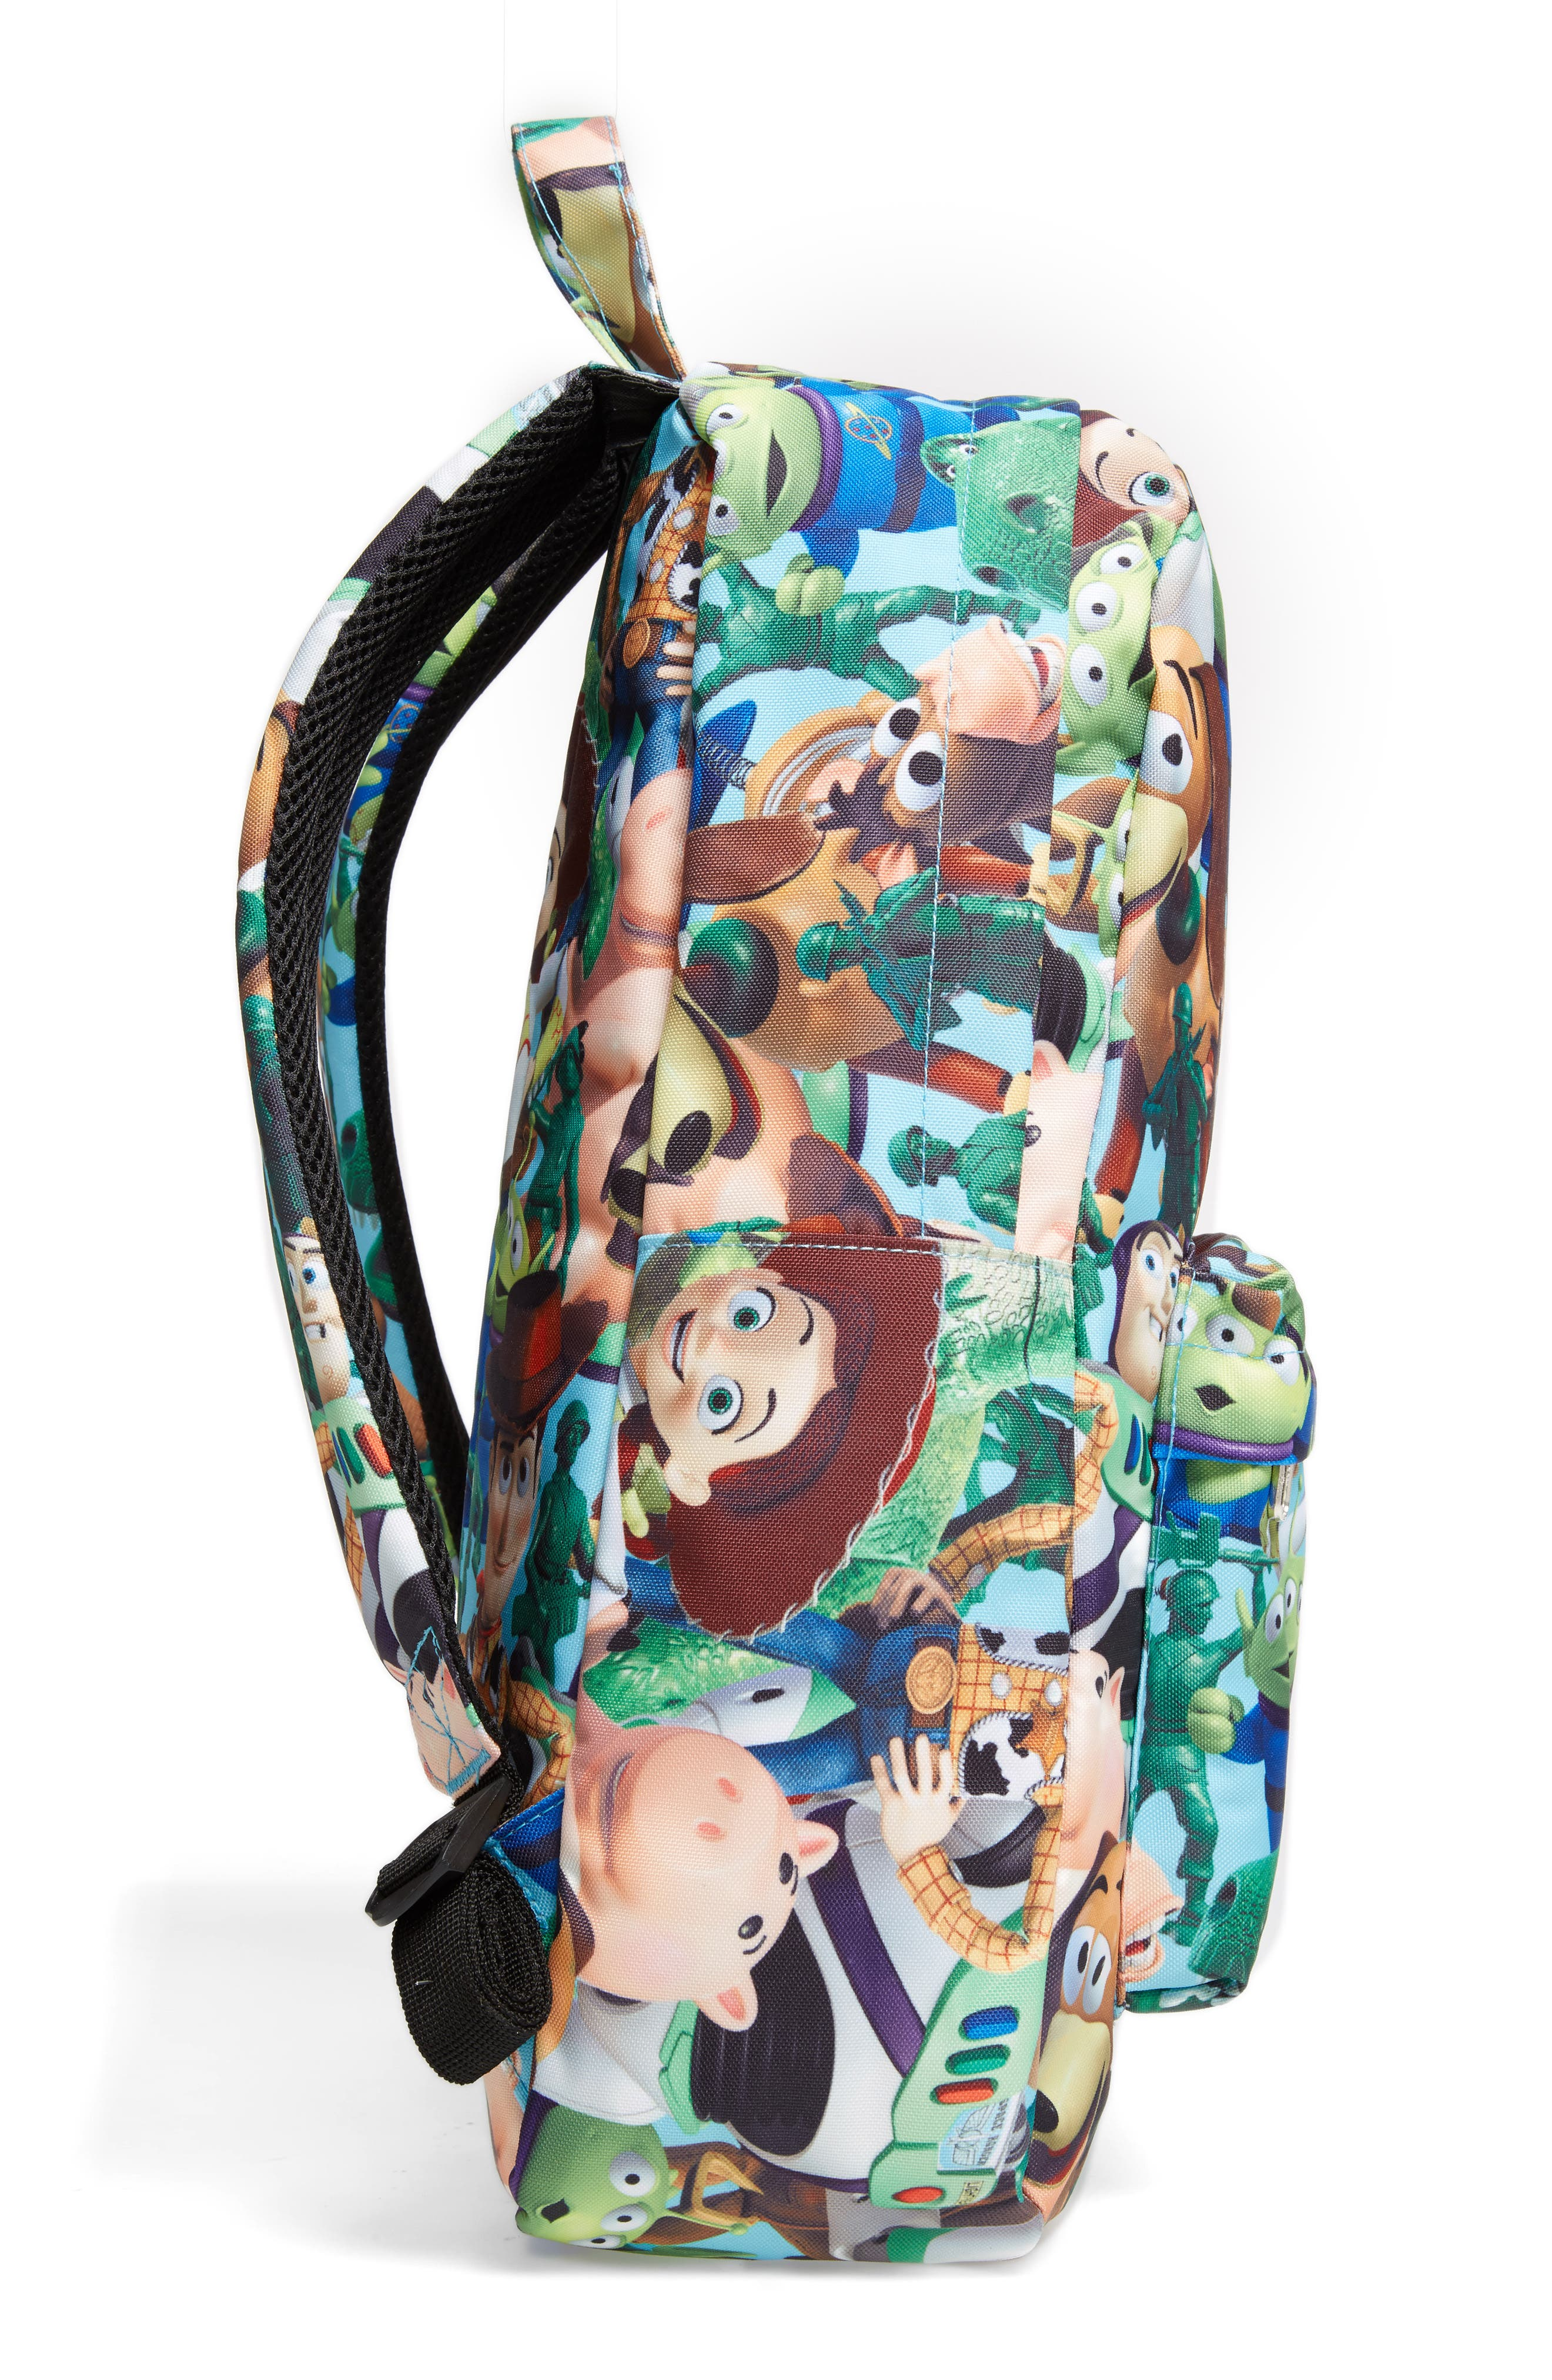 Disney<sup>®</sup> Toy Story Backpack,                             Alternate thumbnail 4, color,                             460